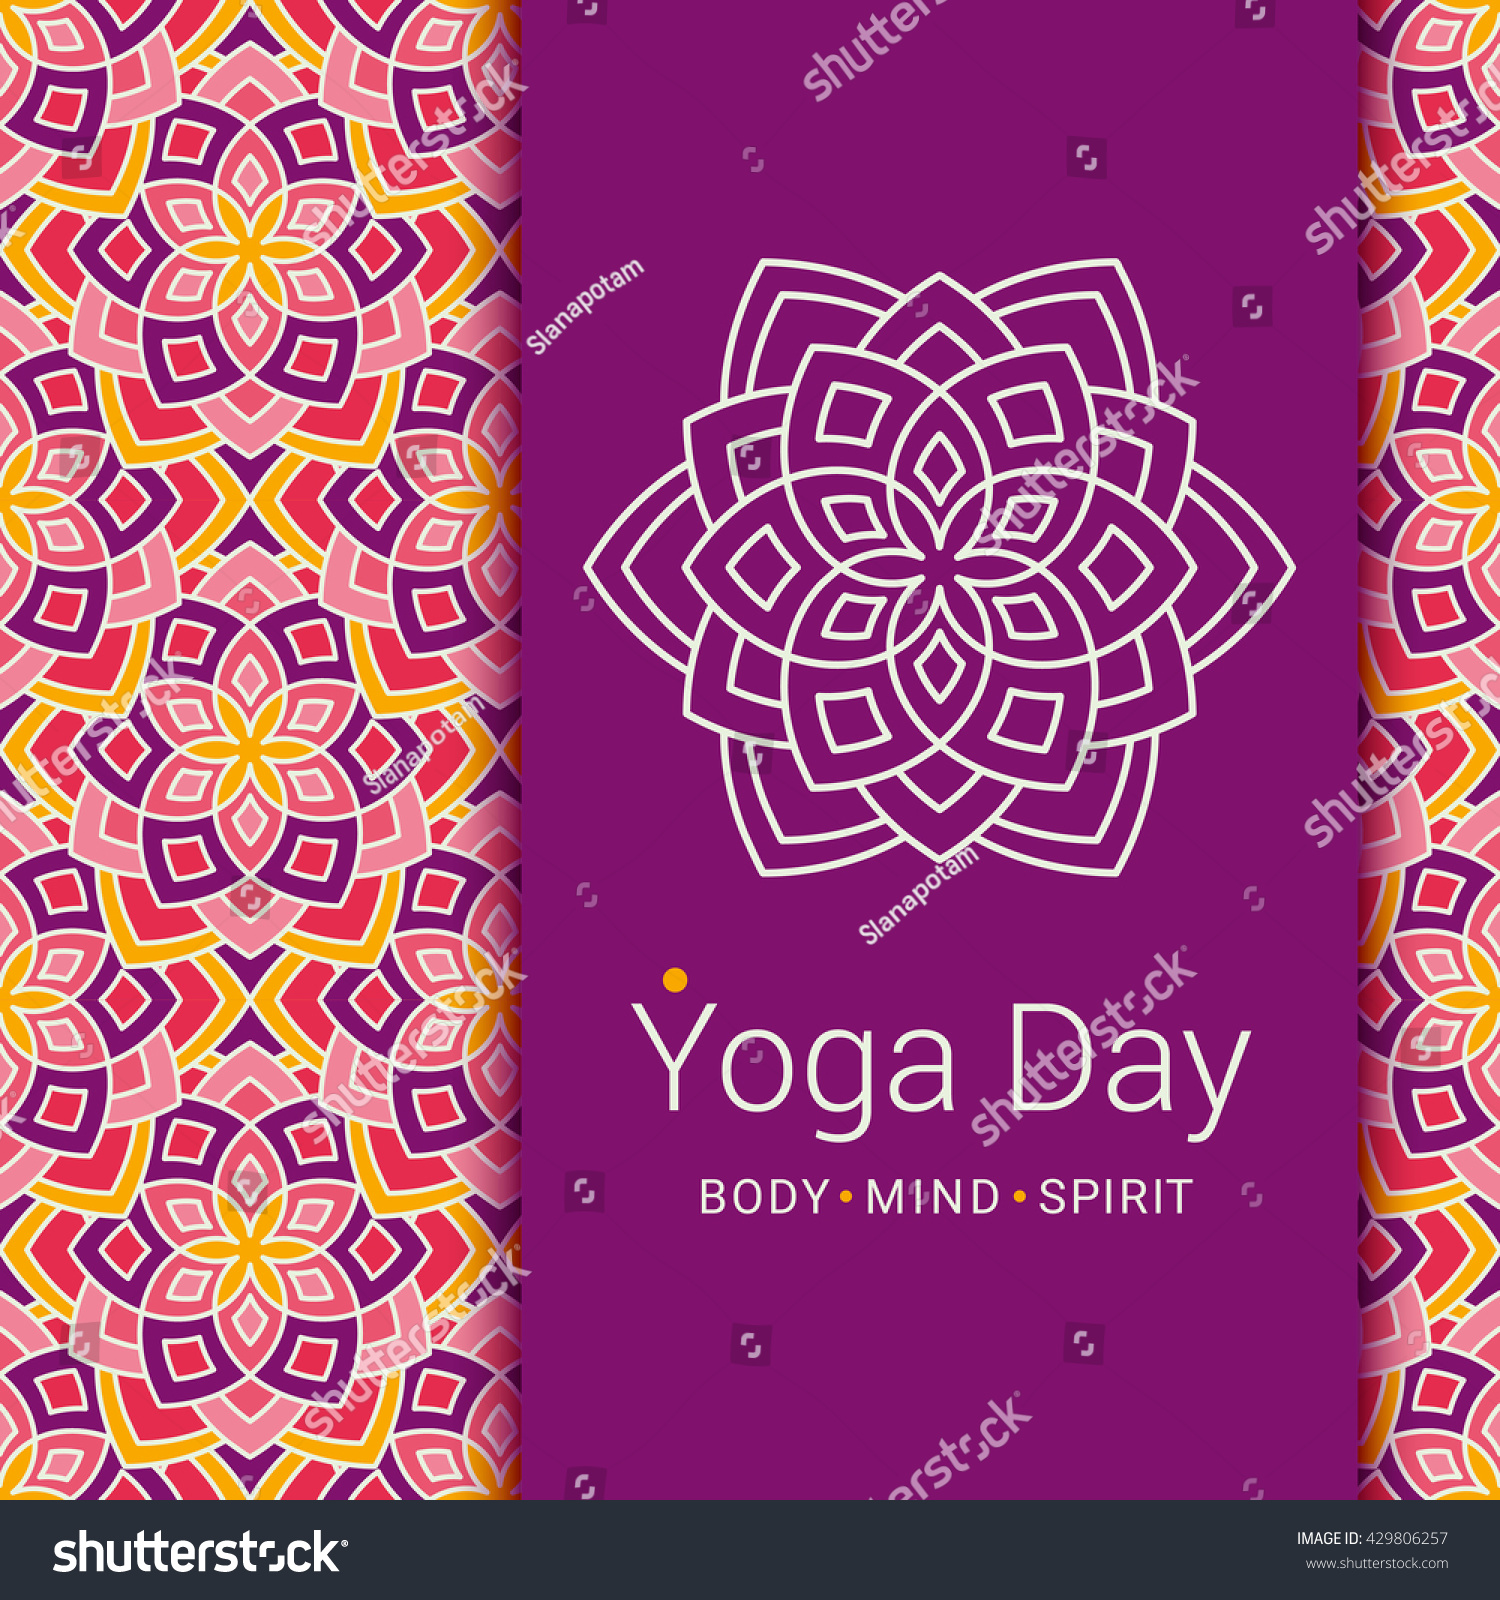 Yoga pattern background seamless pattern with five petals lotus flower - Bright Card With Lotus Flower Sample Text Yoga Day Body And Mind And